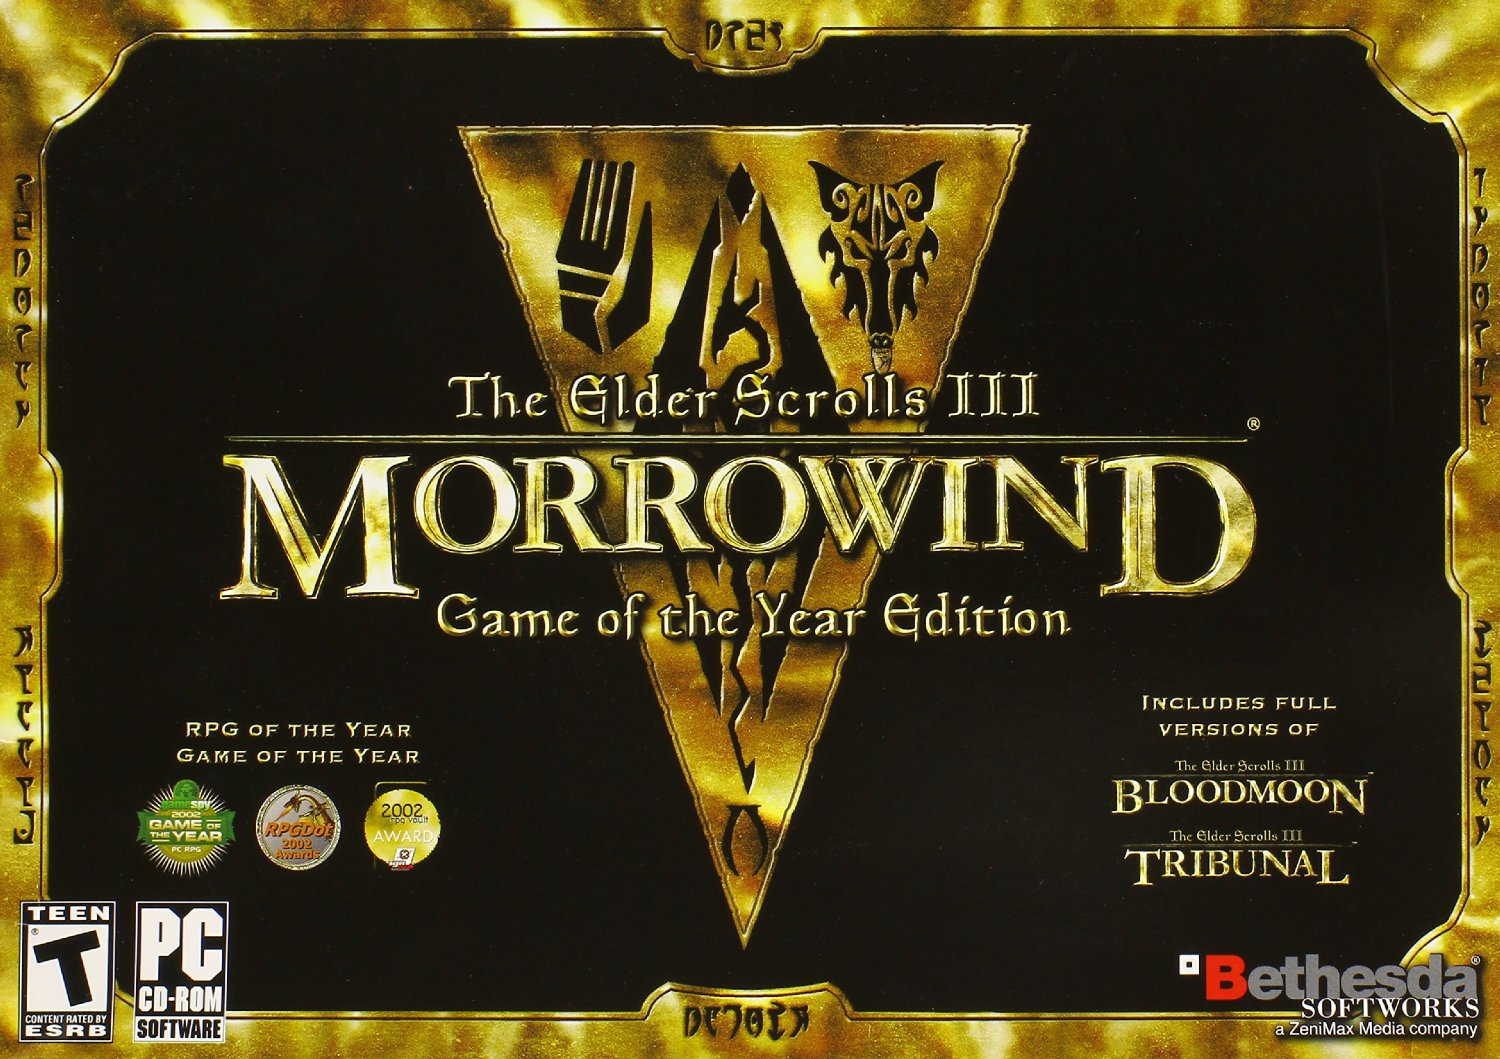 The Elder Scrolls III: Morrowind Game of the Year Edition PC Physical Game Disc US